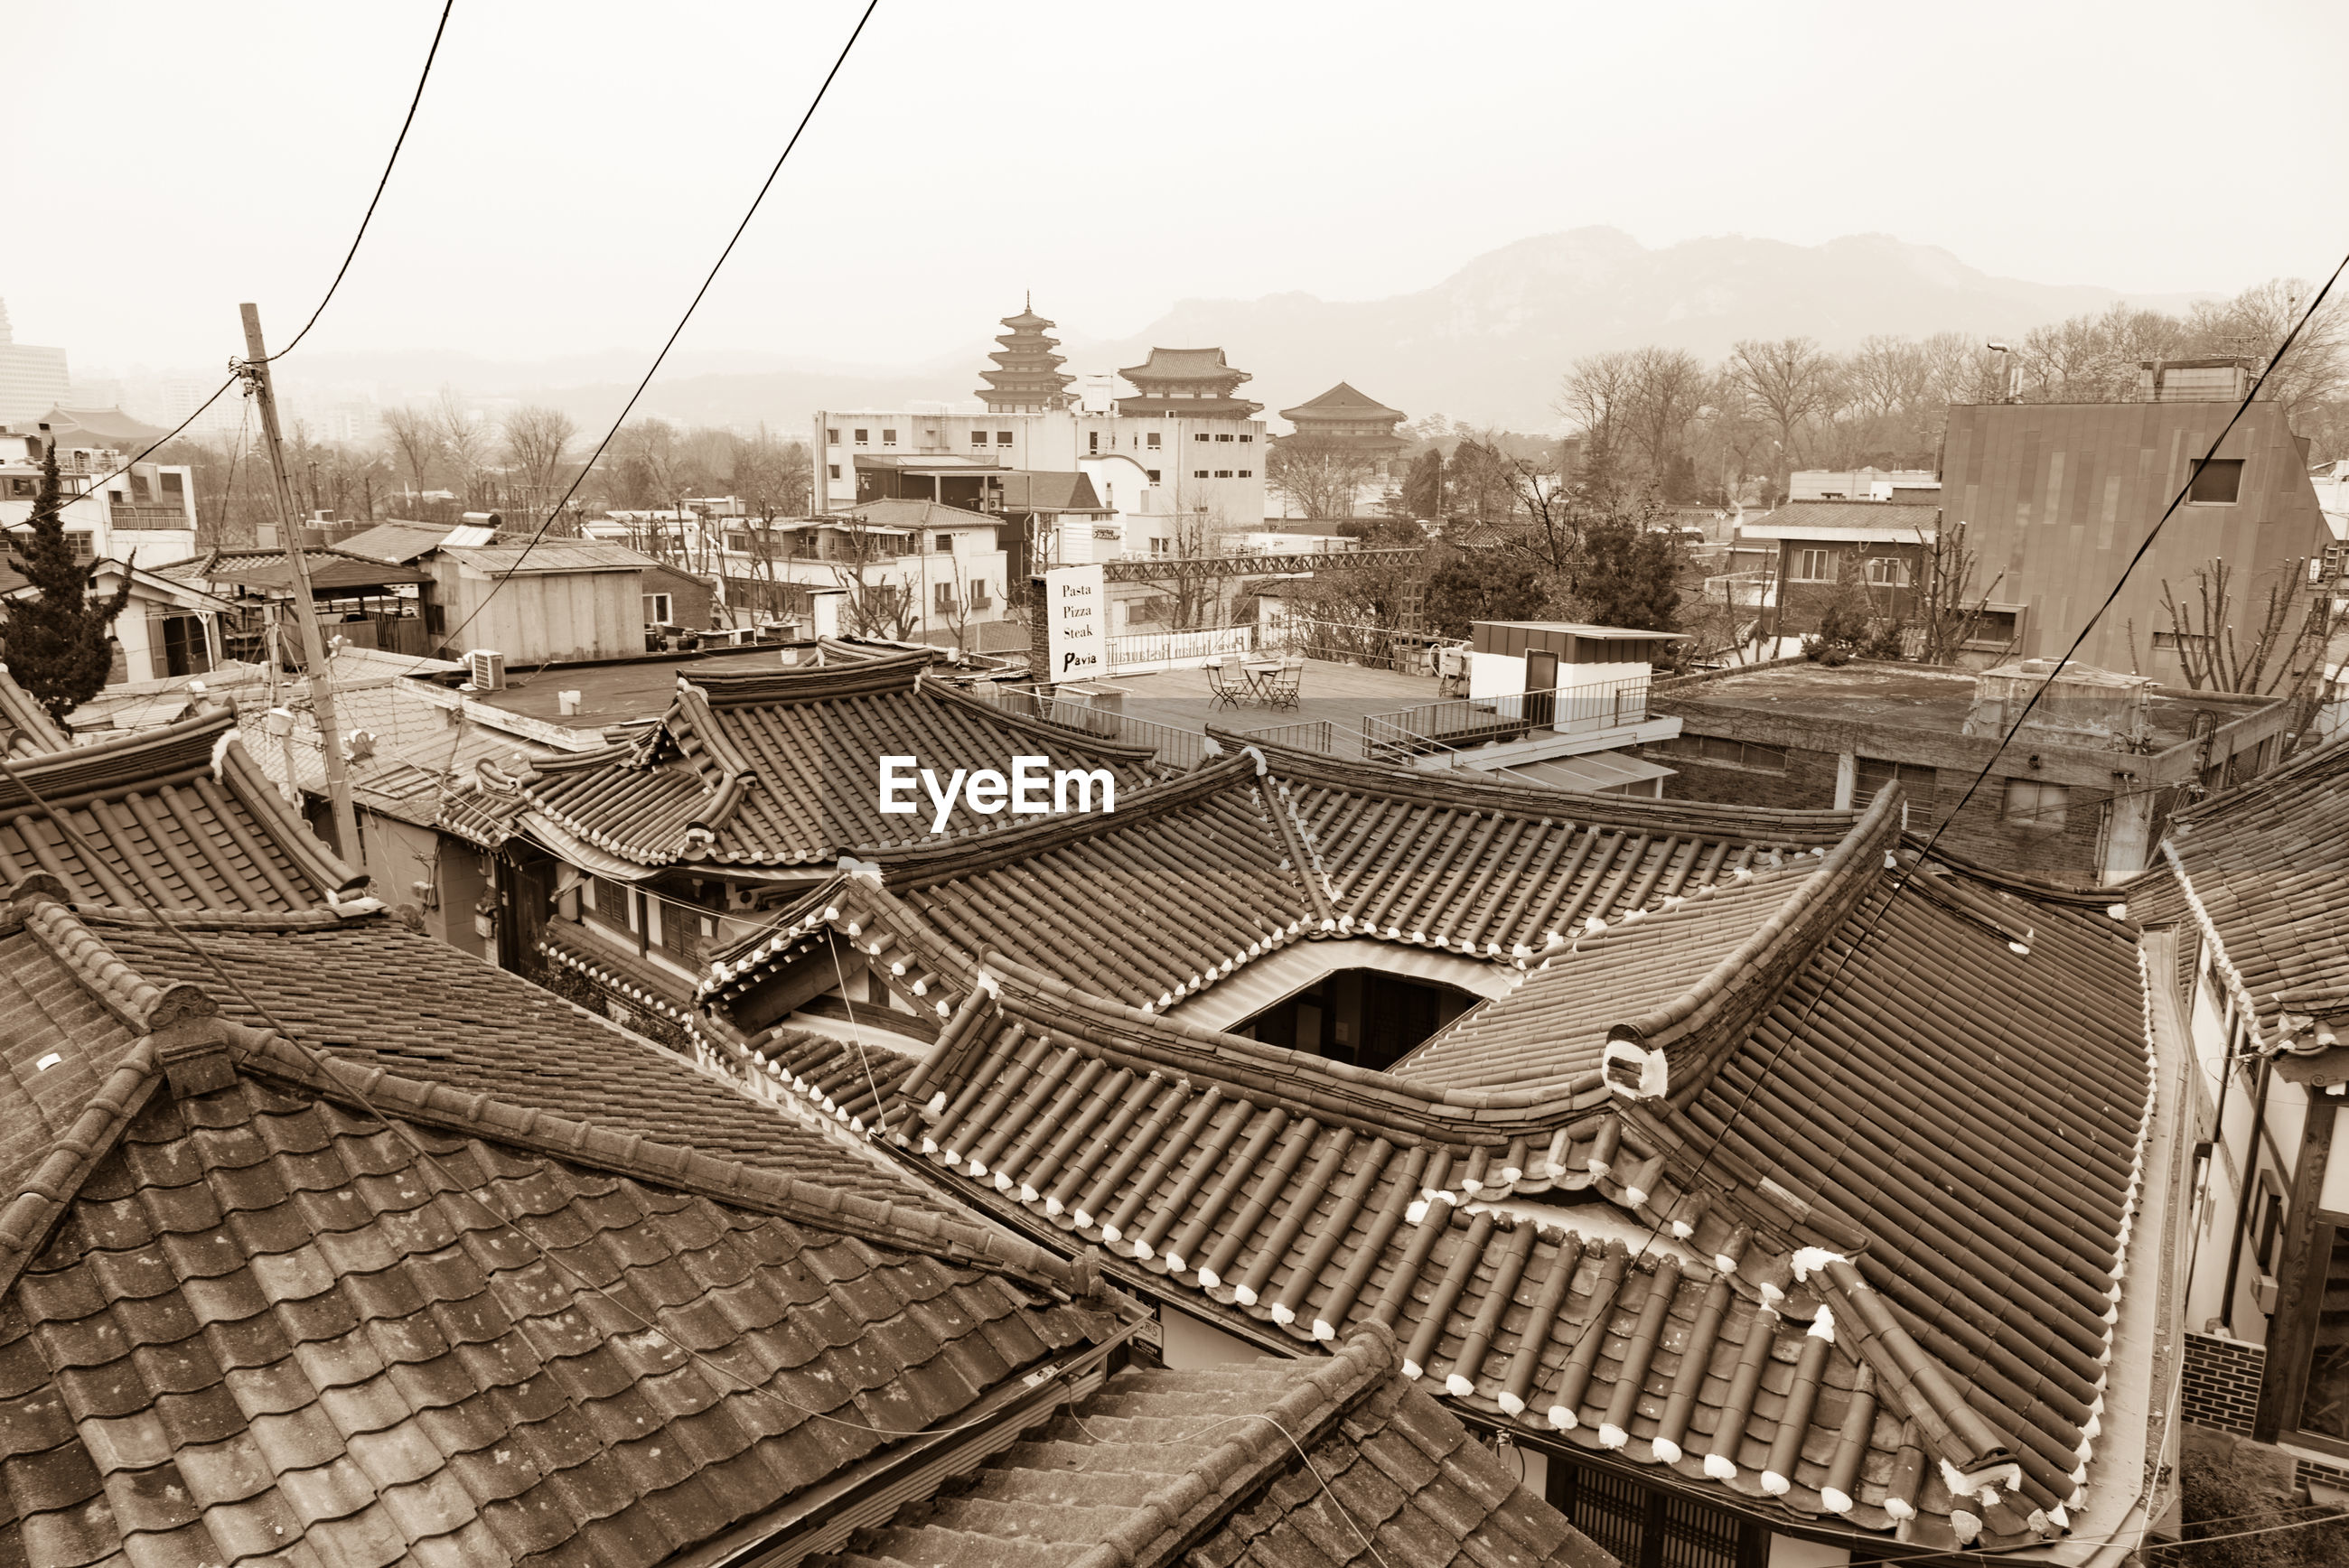 HIGH ANGLE VIEW OF BUILDINGS